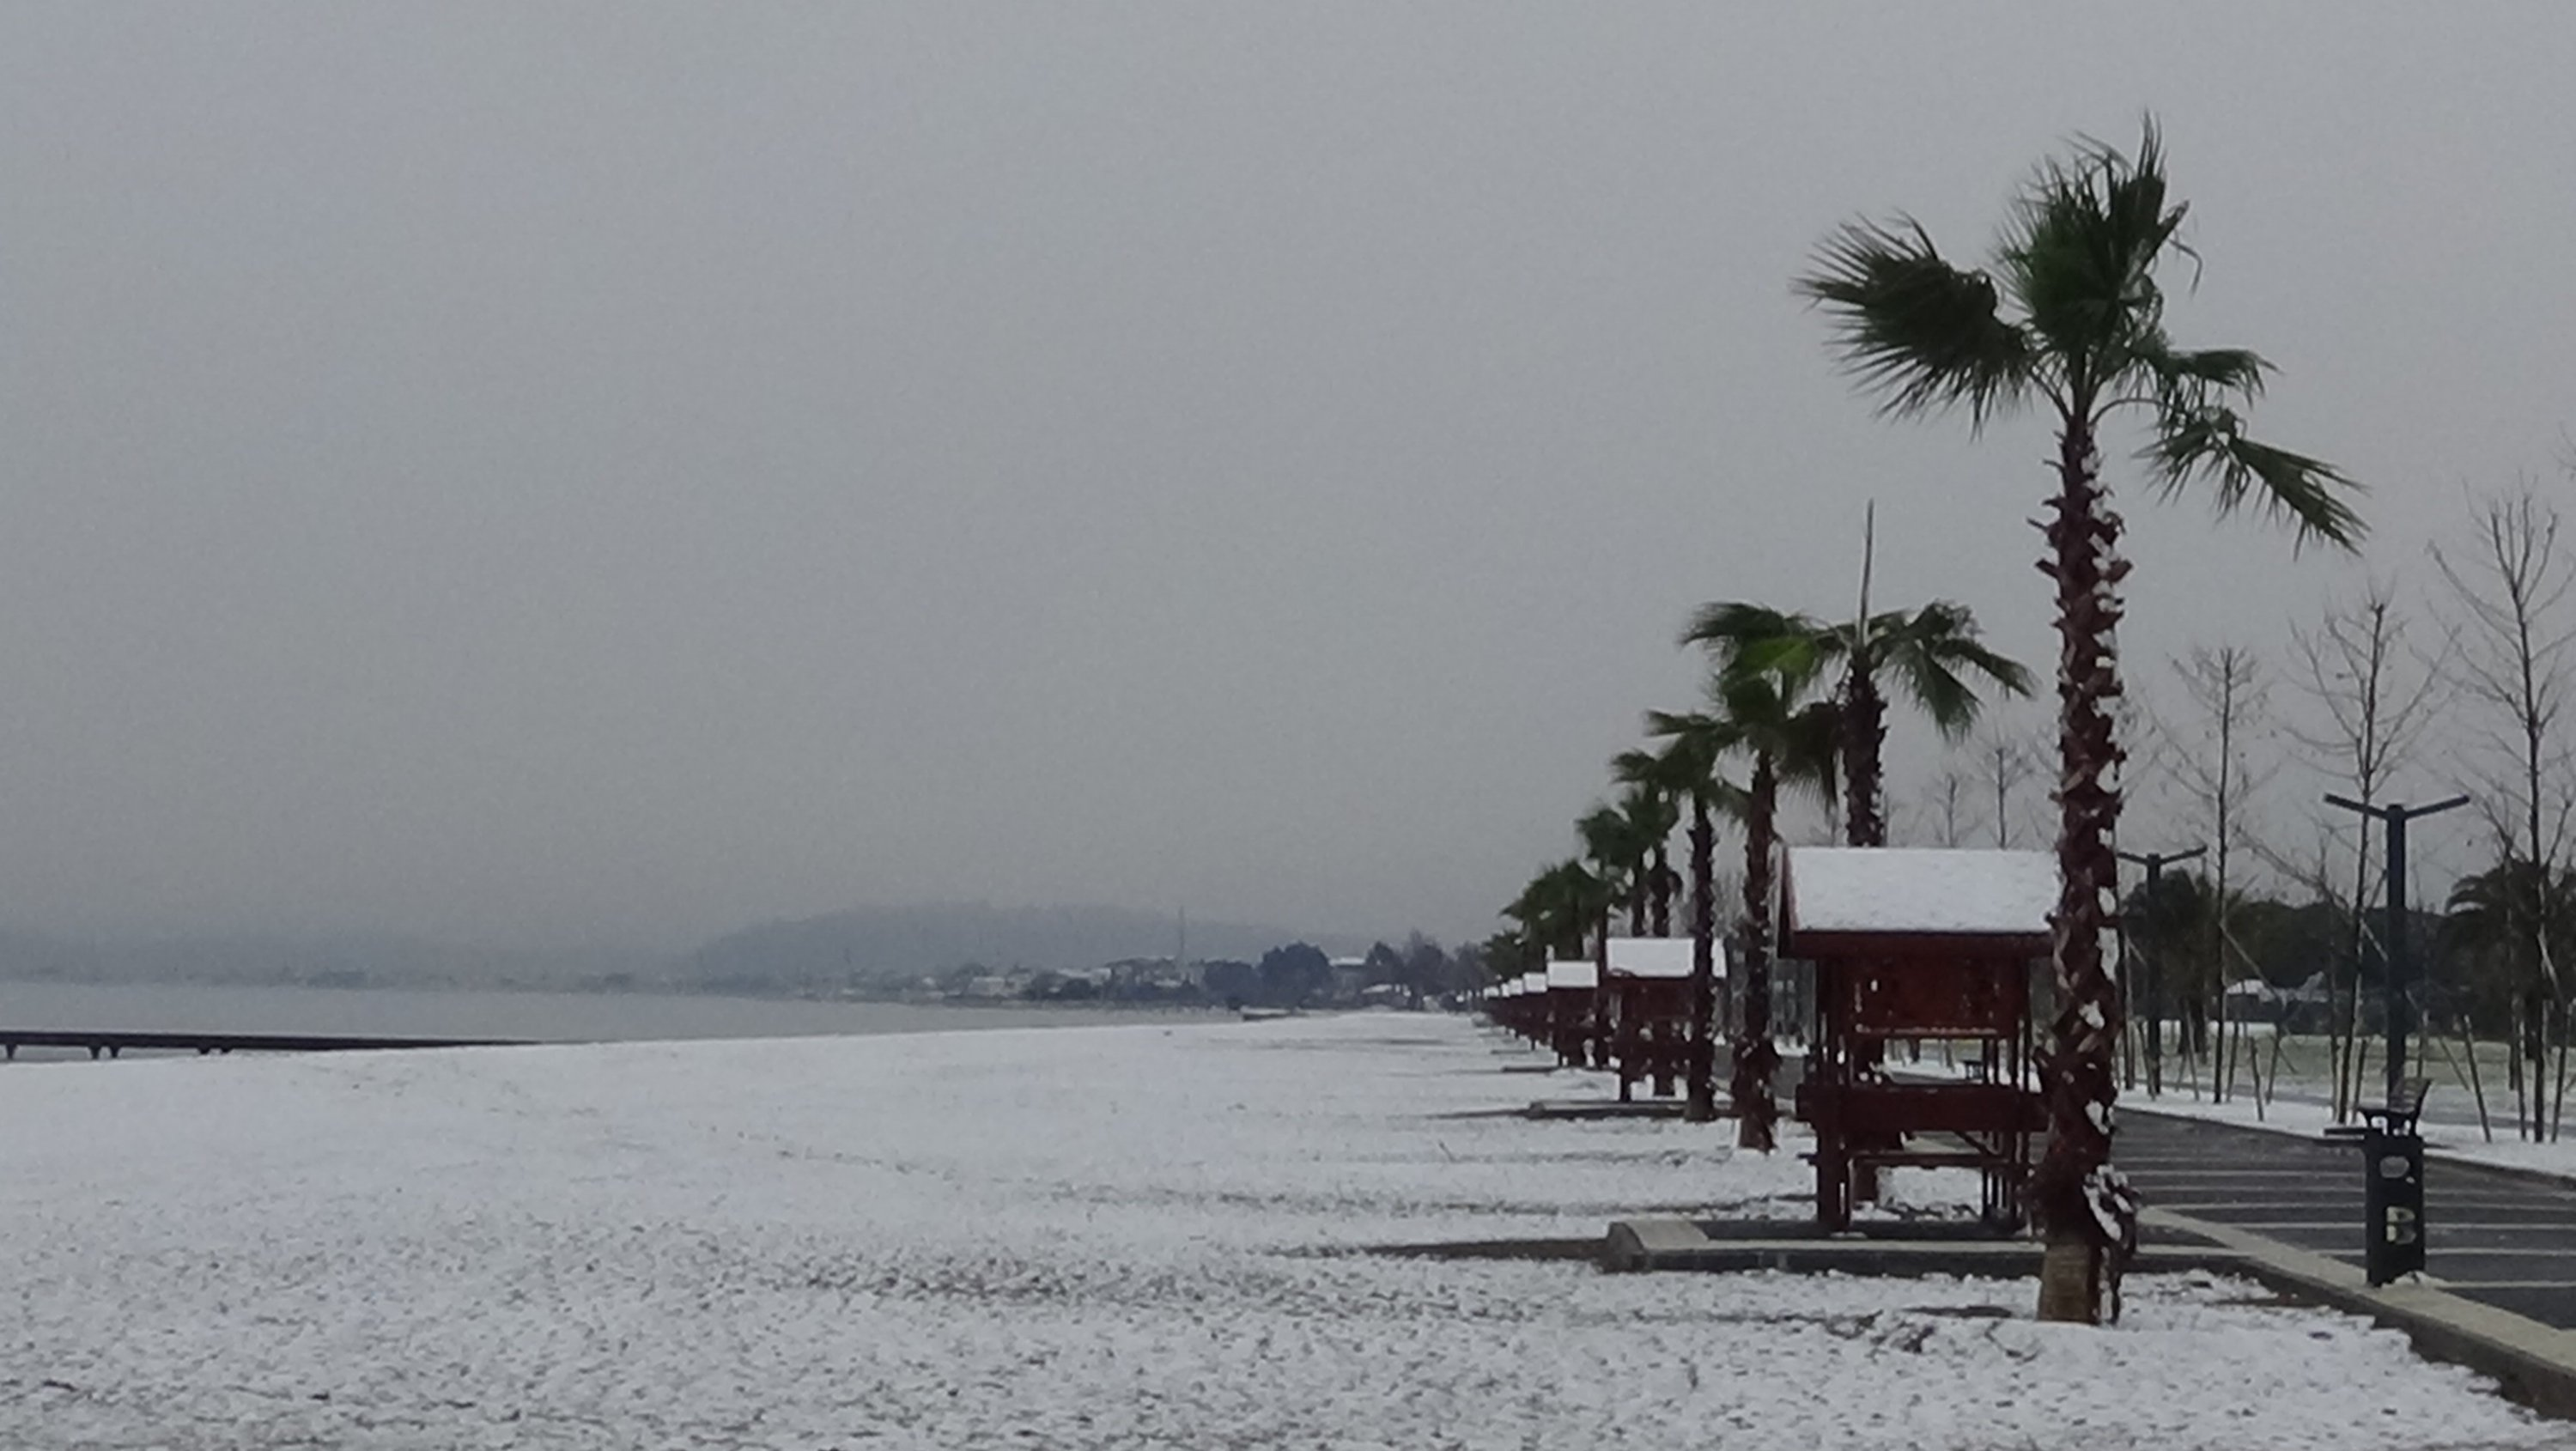 The beaches of Akçay coastal resort of Edremit district are covered in snow, in western Turkey, on Jan. 16, 2021. (IHA Photo)